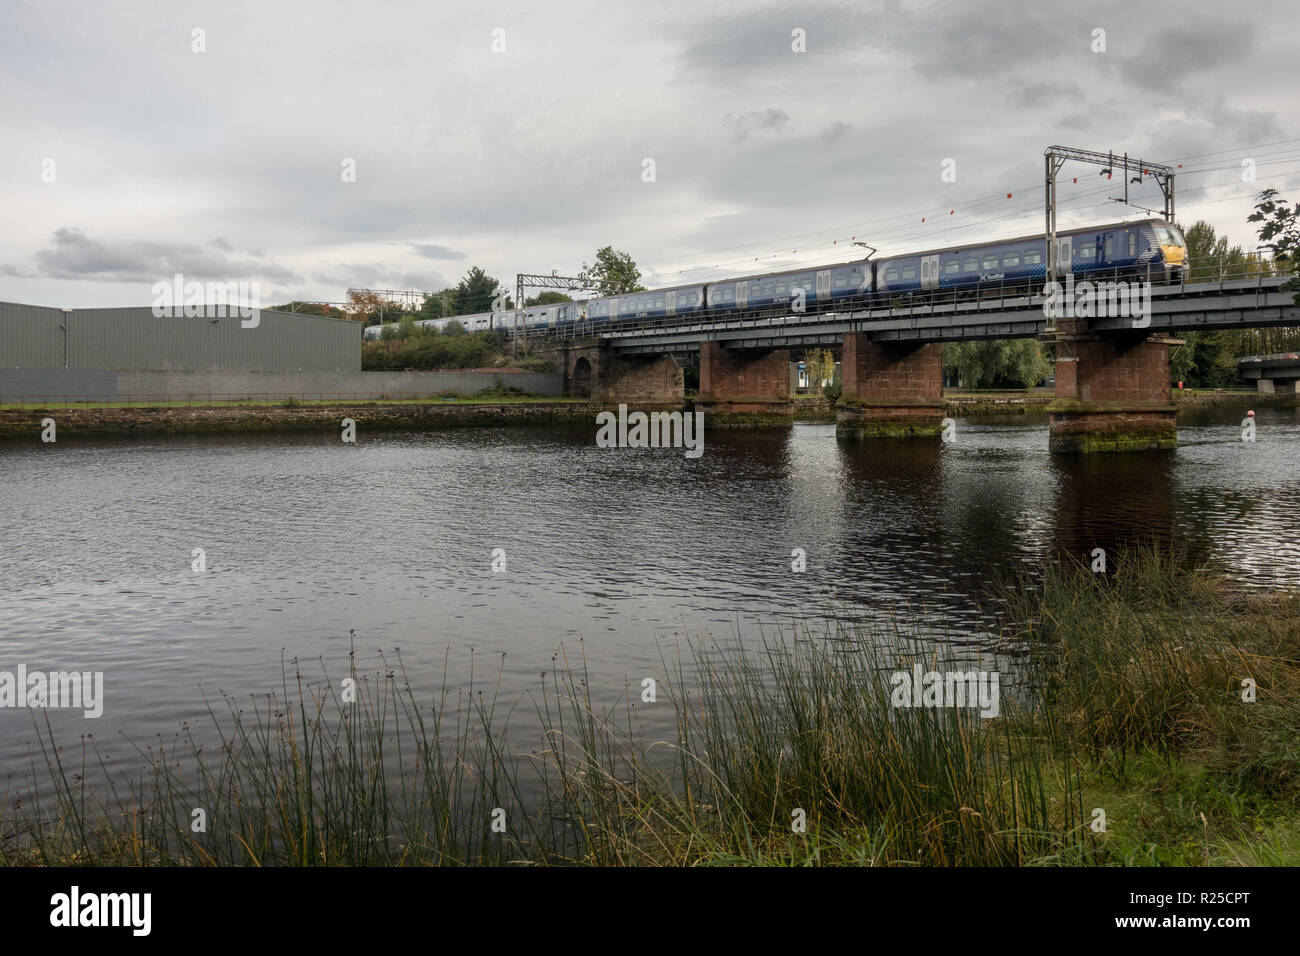 Dumbarton, Scotland, UK - September 28, 2017: A Scotrail passenger train crosses the River Leven at Dumbarton on the North Clyde Line near Glasgow. - Stock Image